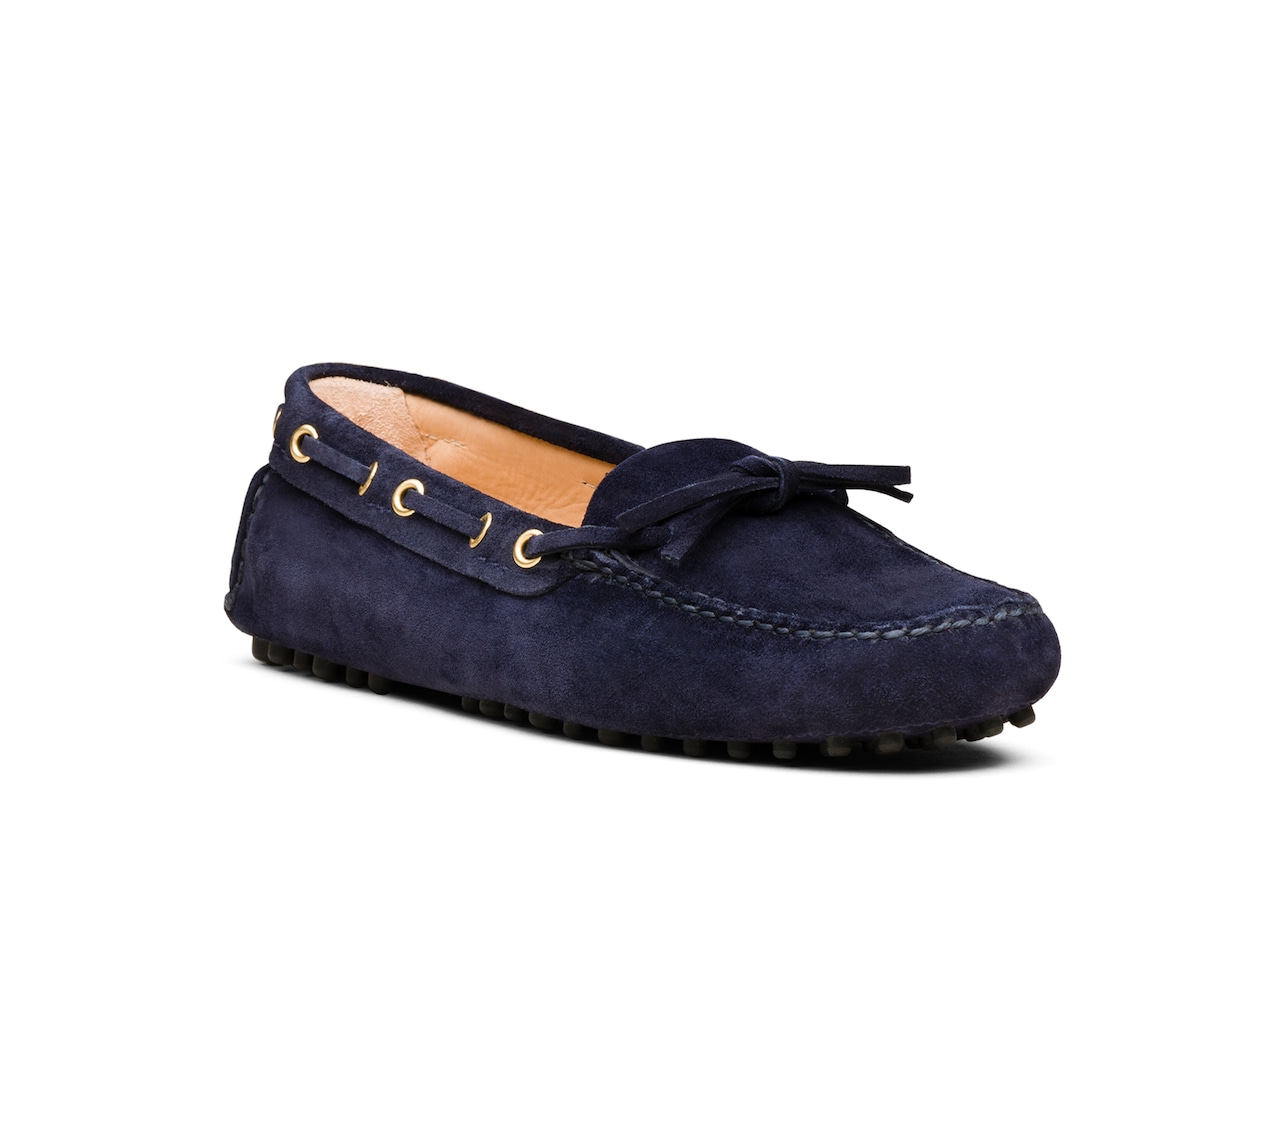 DRIVING SHOES SUEDE BLUE